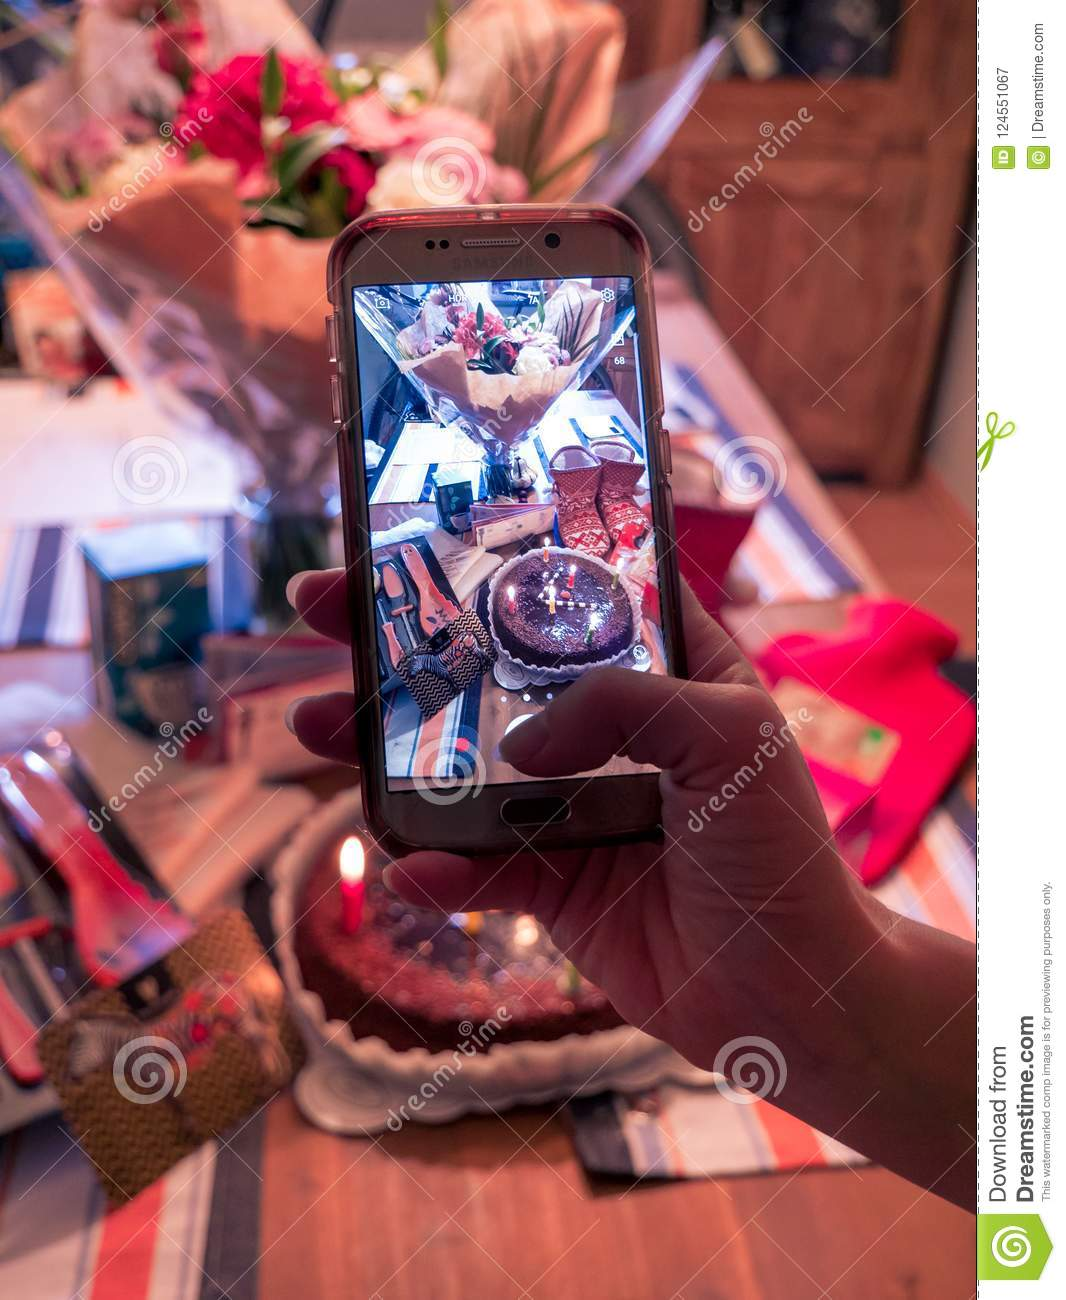 Taking Photo Of Birthday Presents With Smartphone Stock Image